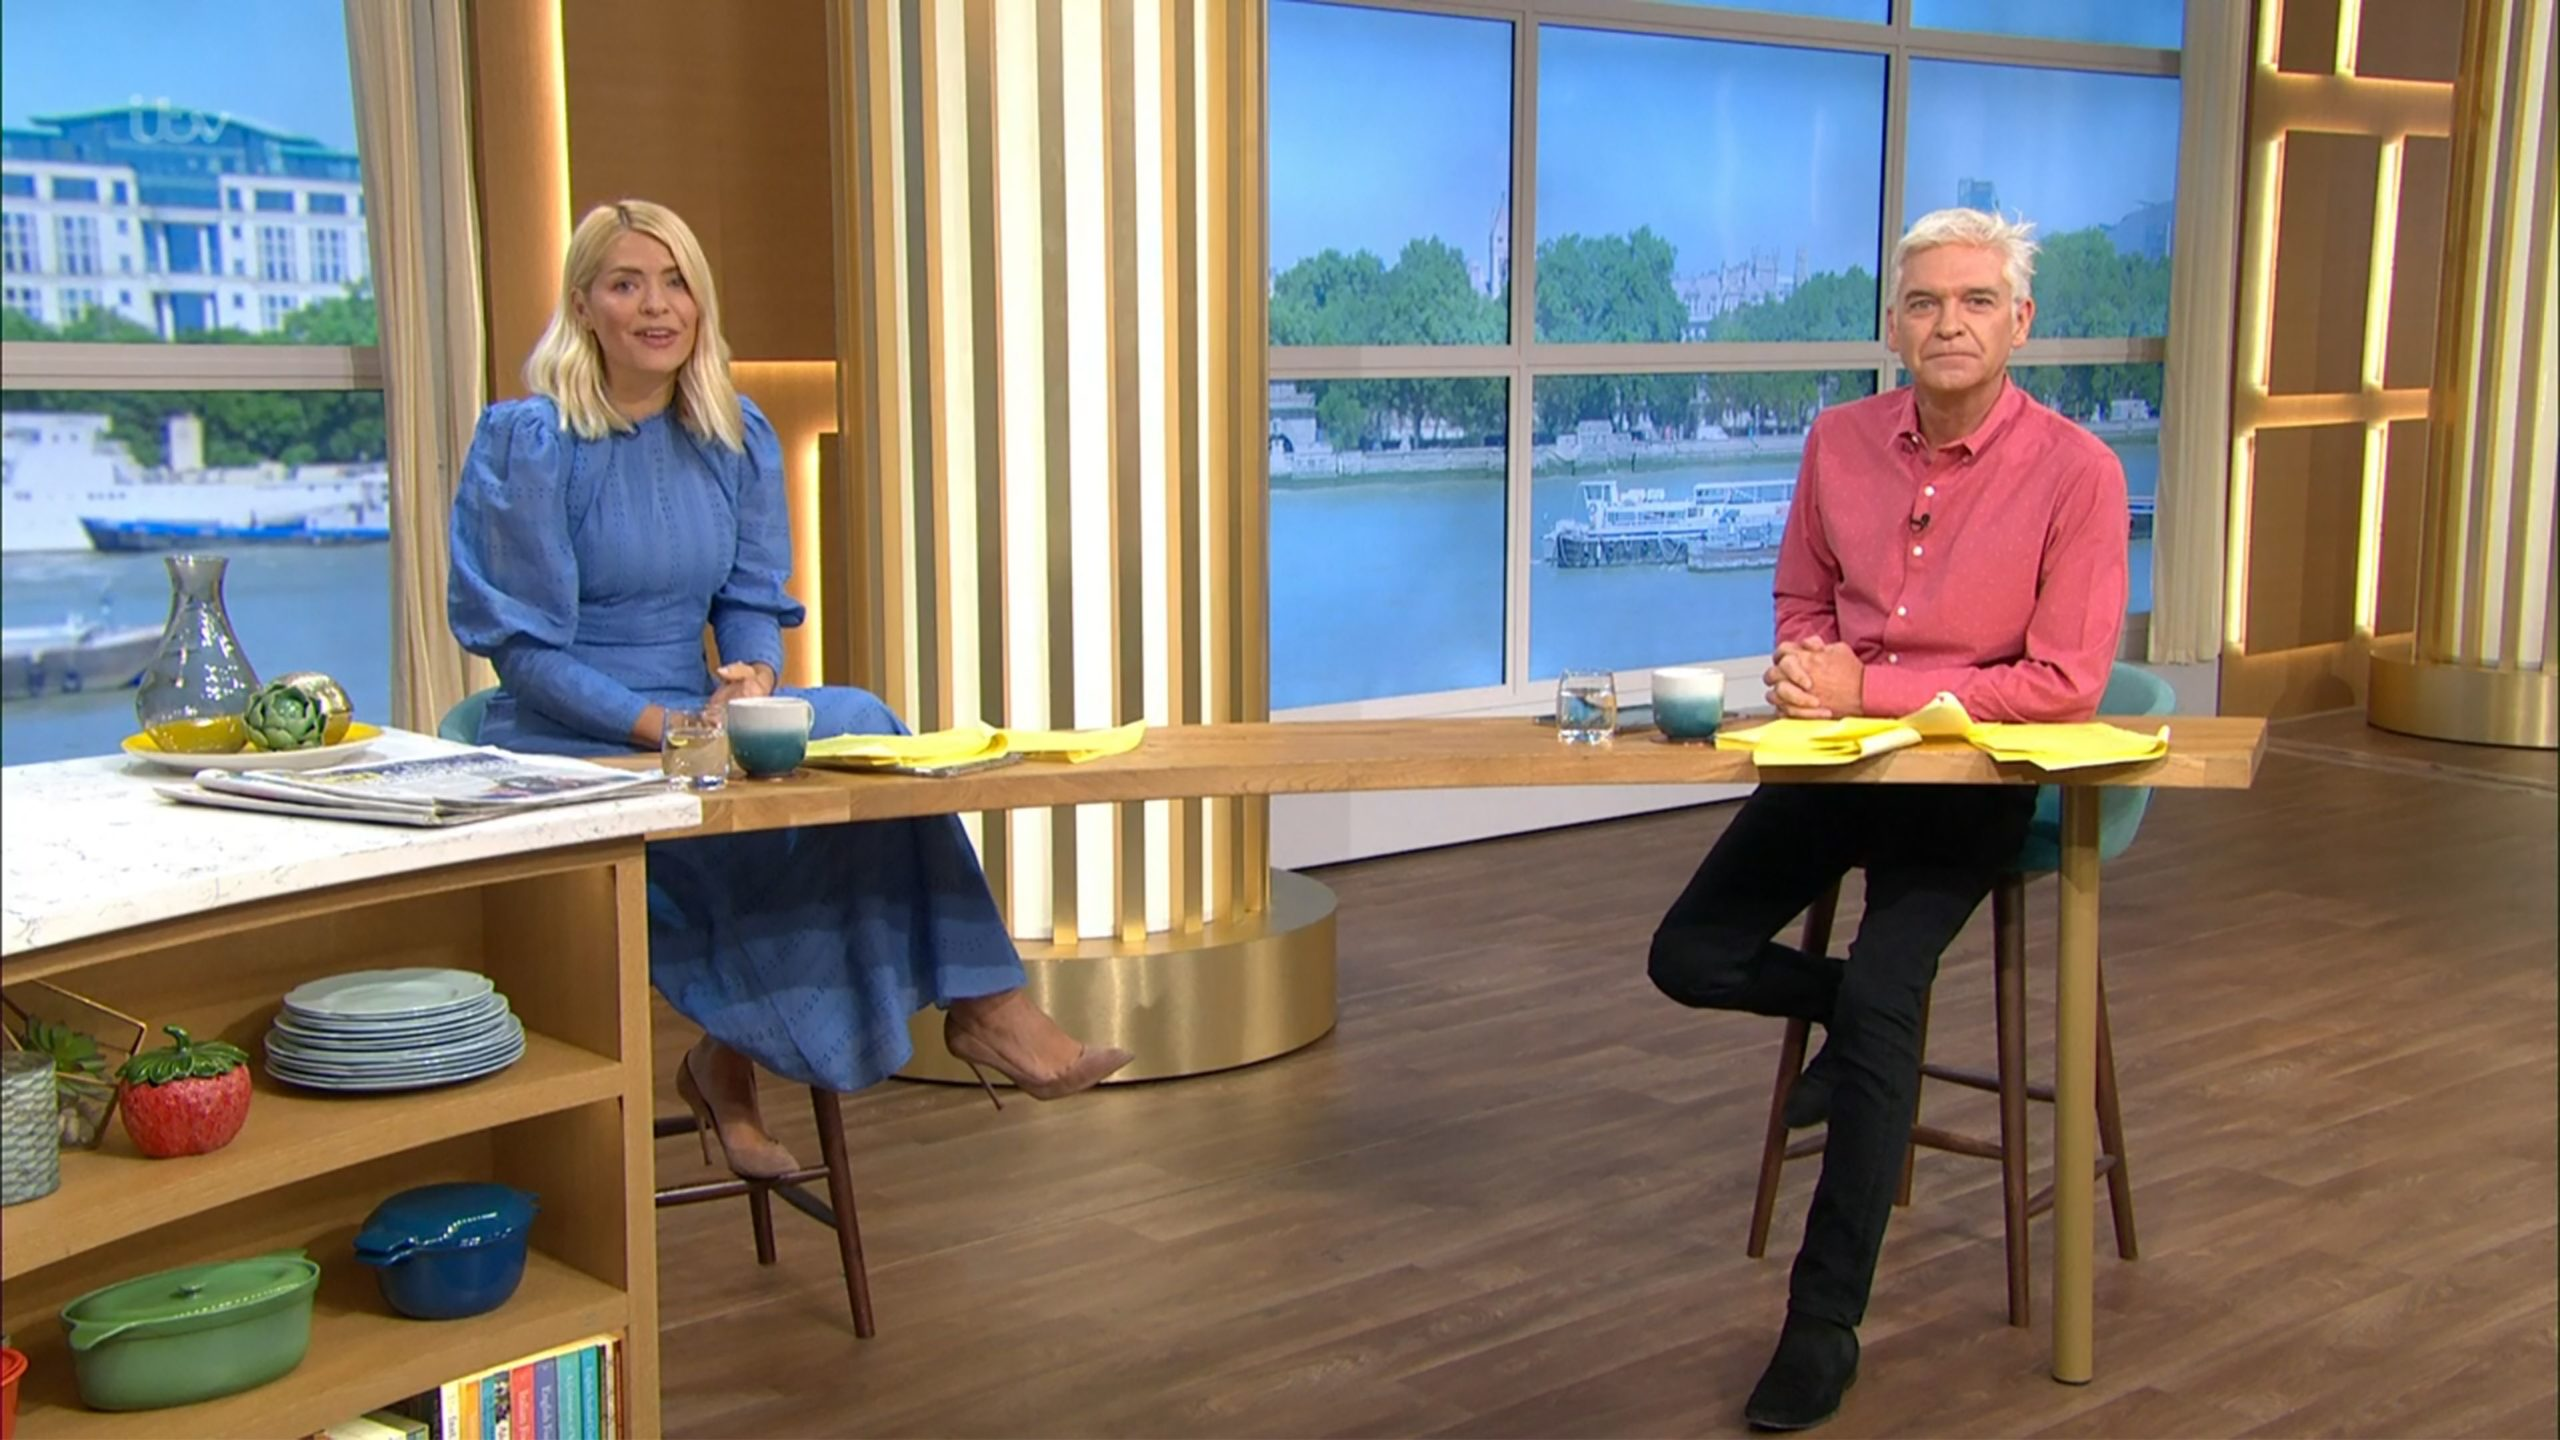 This Morning hosts Holly and Phil in hysterics as they debate 'butt cracks' and 'poop' in hot tubs